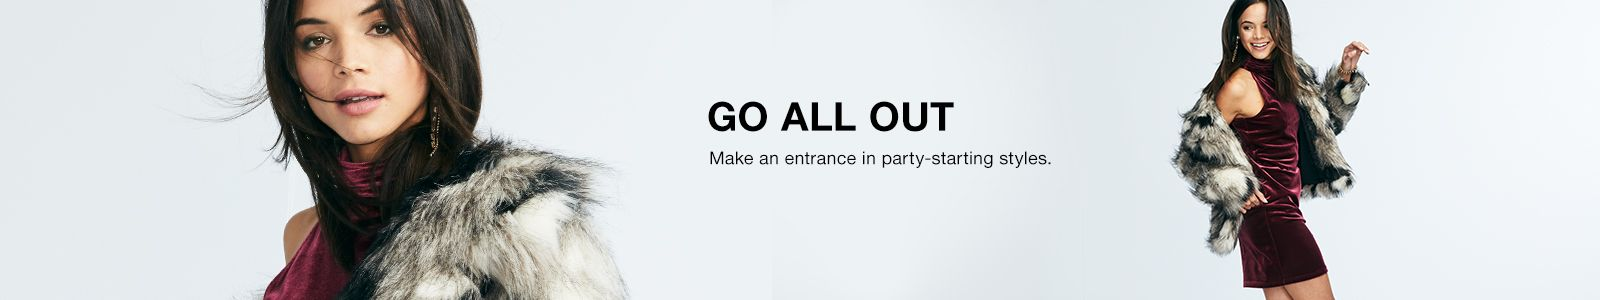 Go All Out, Make an entrance in party-starting styles